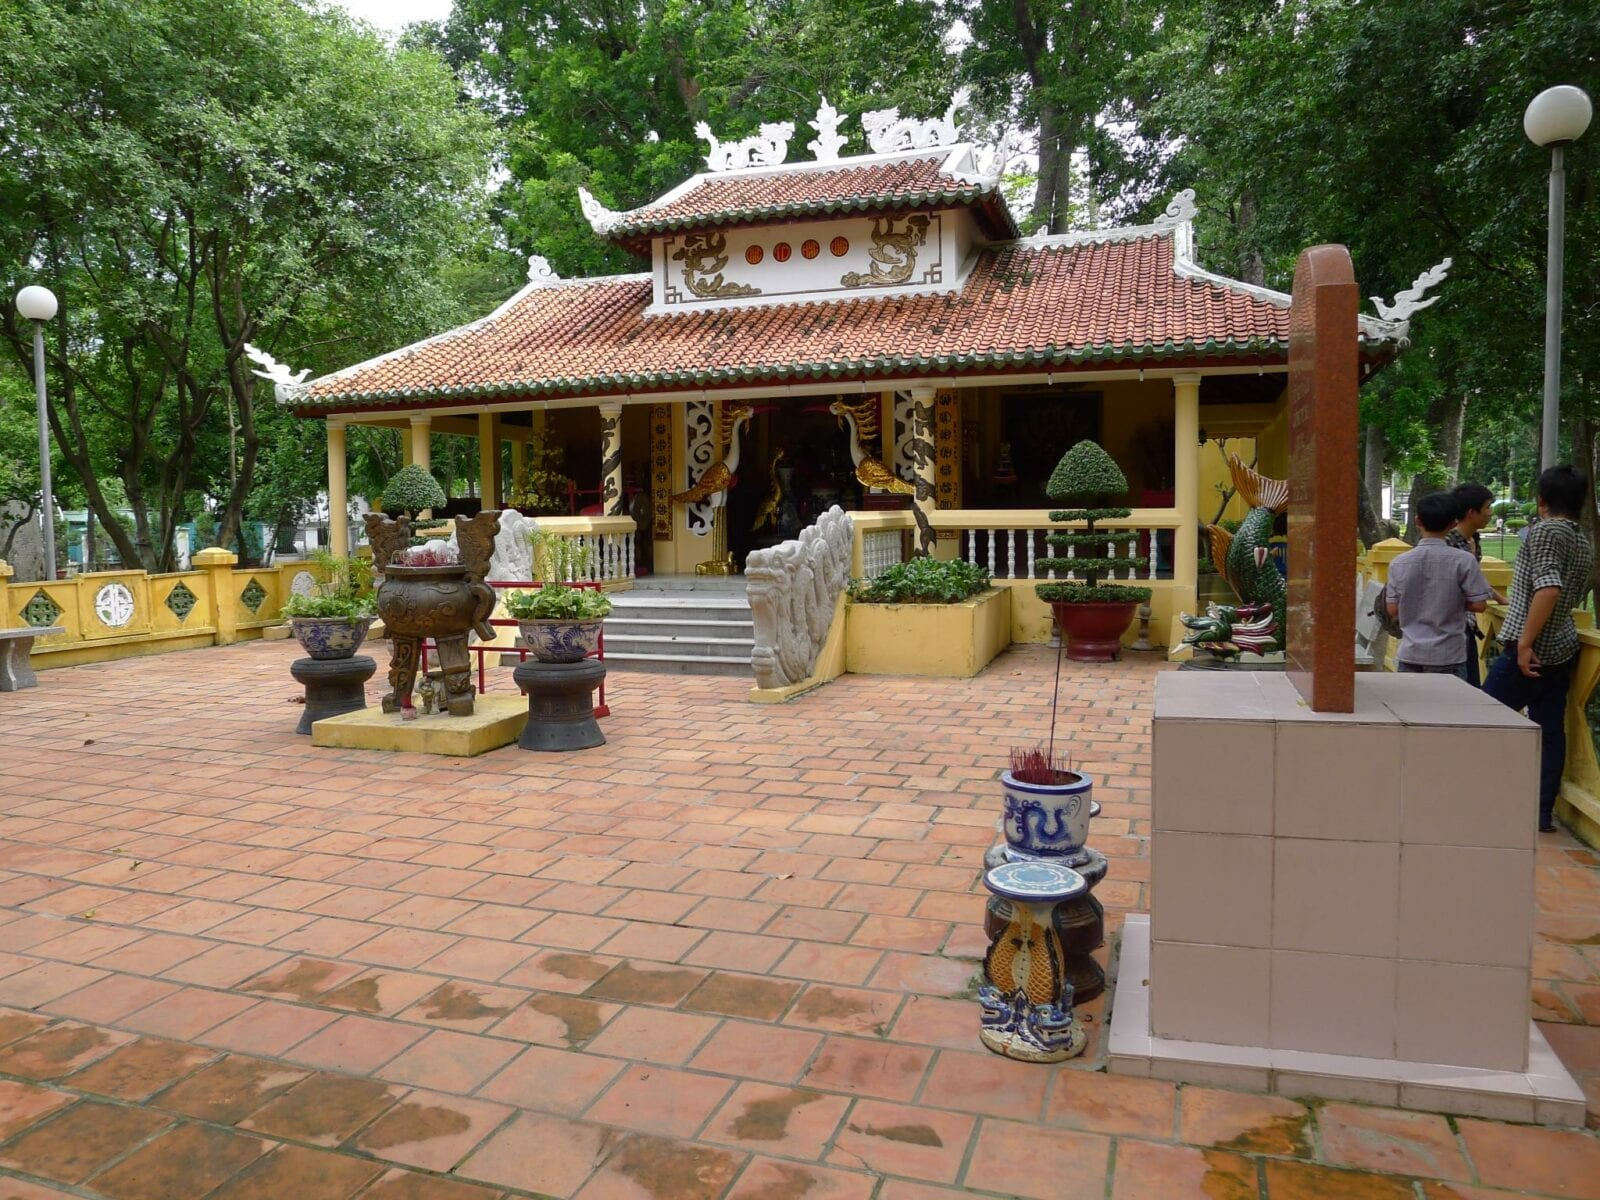 Image of a temple at the Tao Dan Park in Ho Chi Minh City, Vietnam